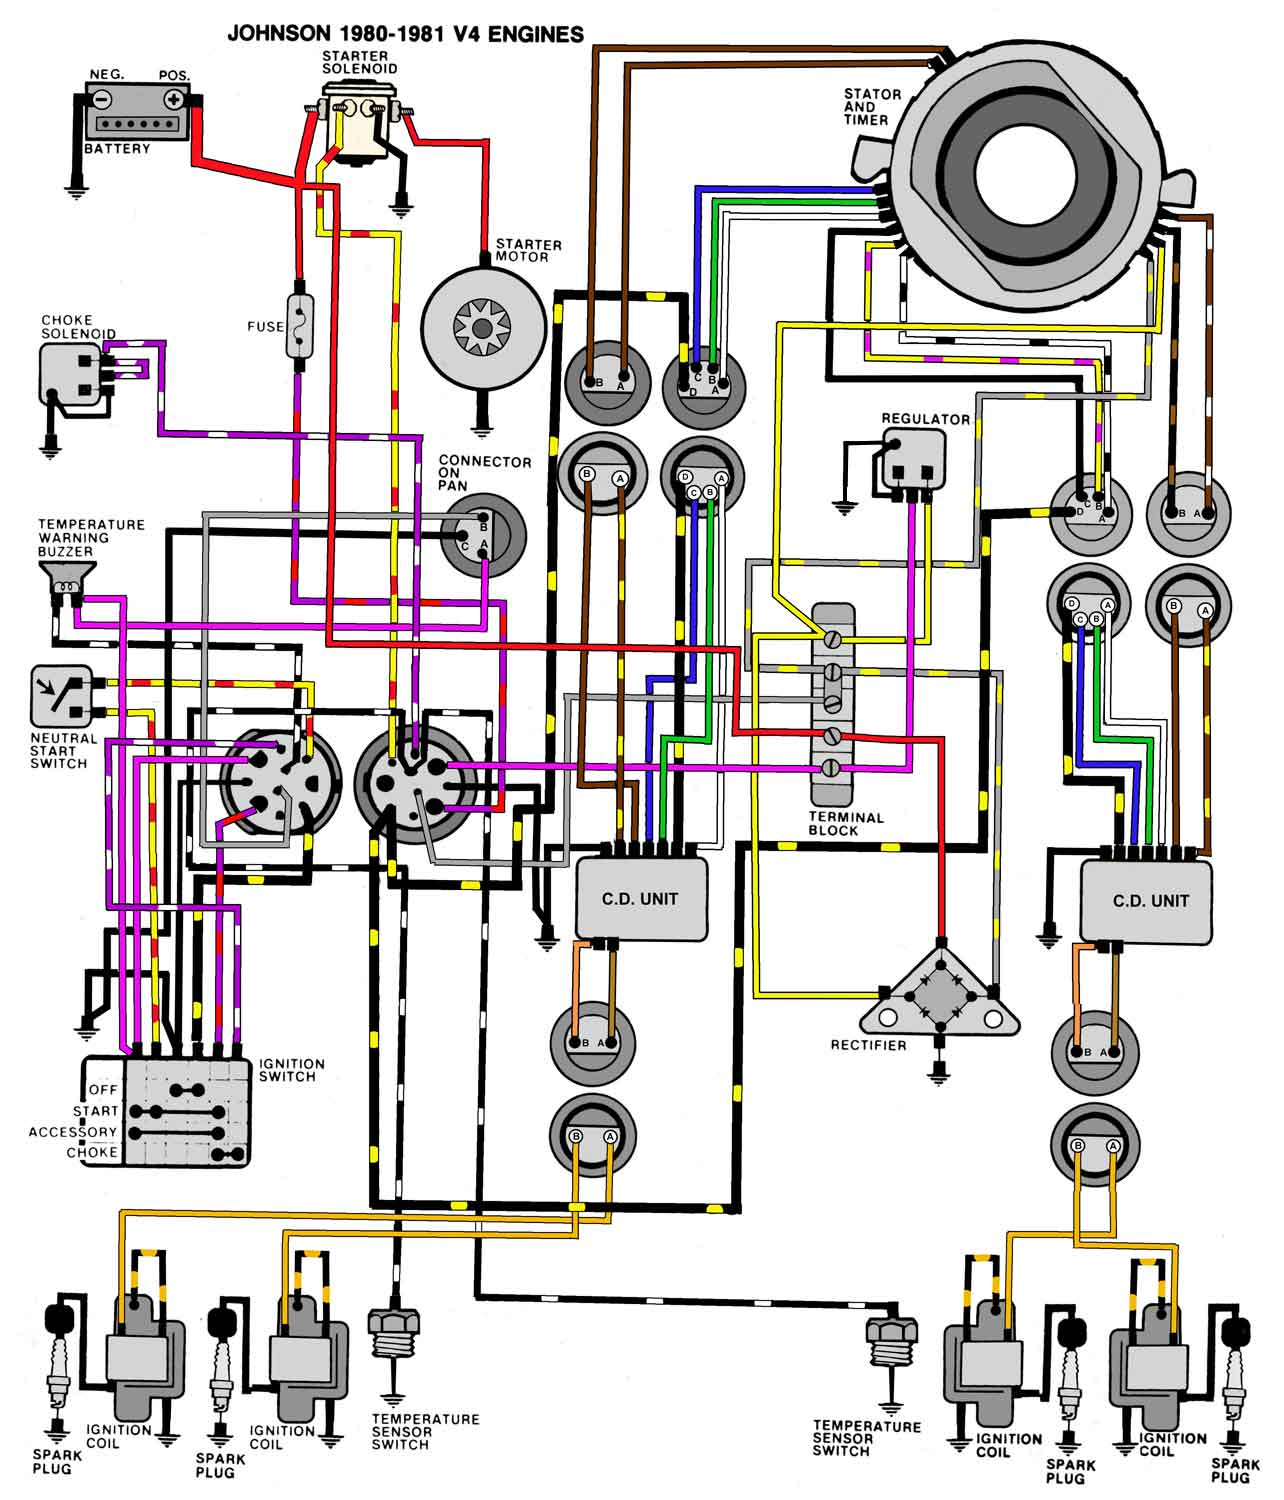 80_81_V4 mastertech marine evinrude johnson outboard wiring diagrams johnson red plug wiring diagram at pacquiaovsvargaslive.co